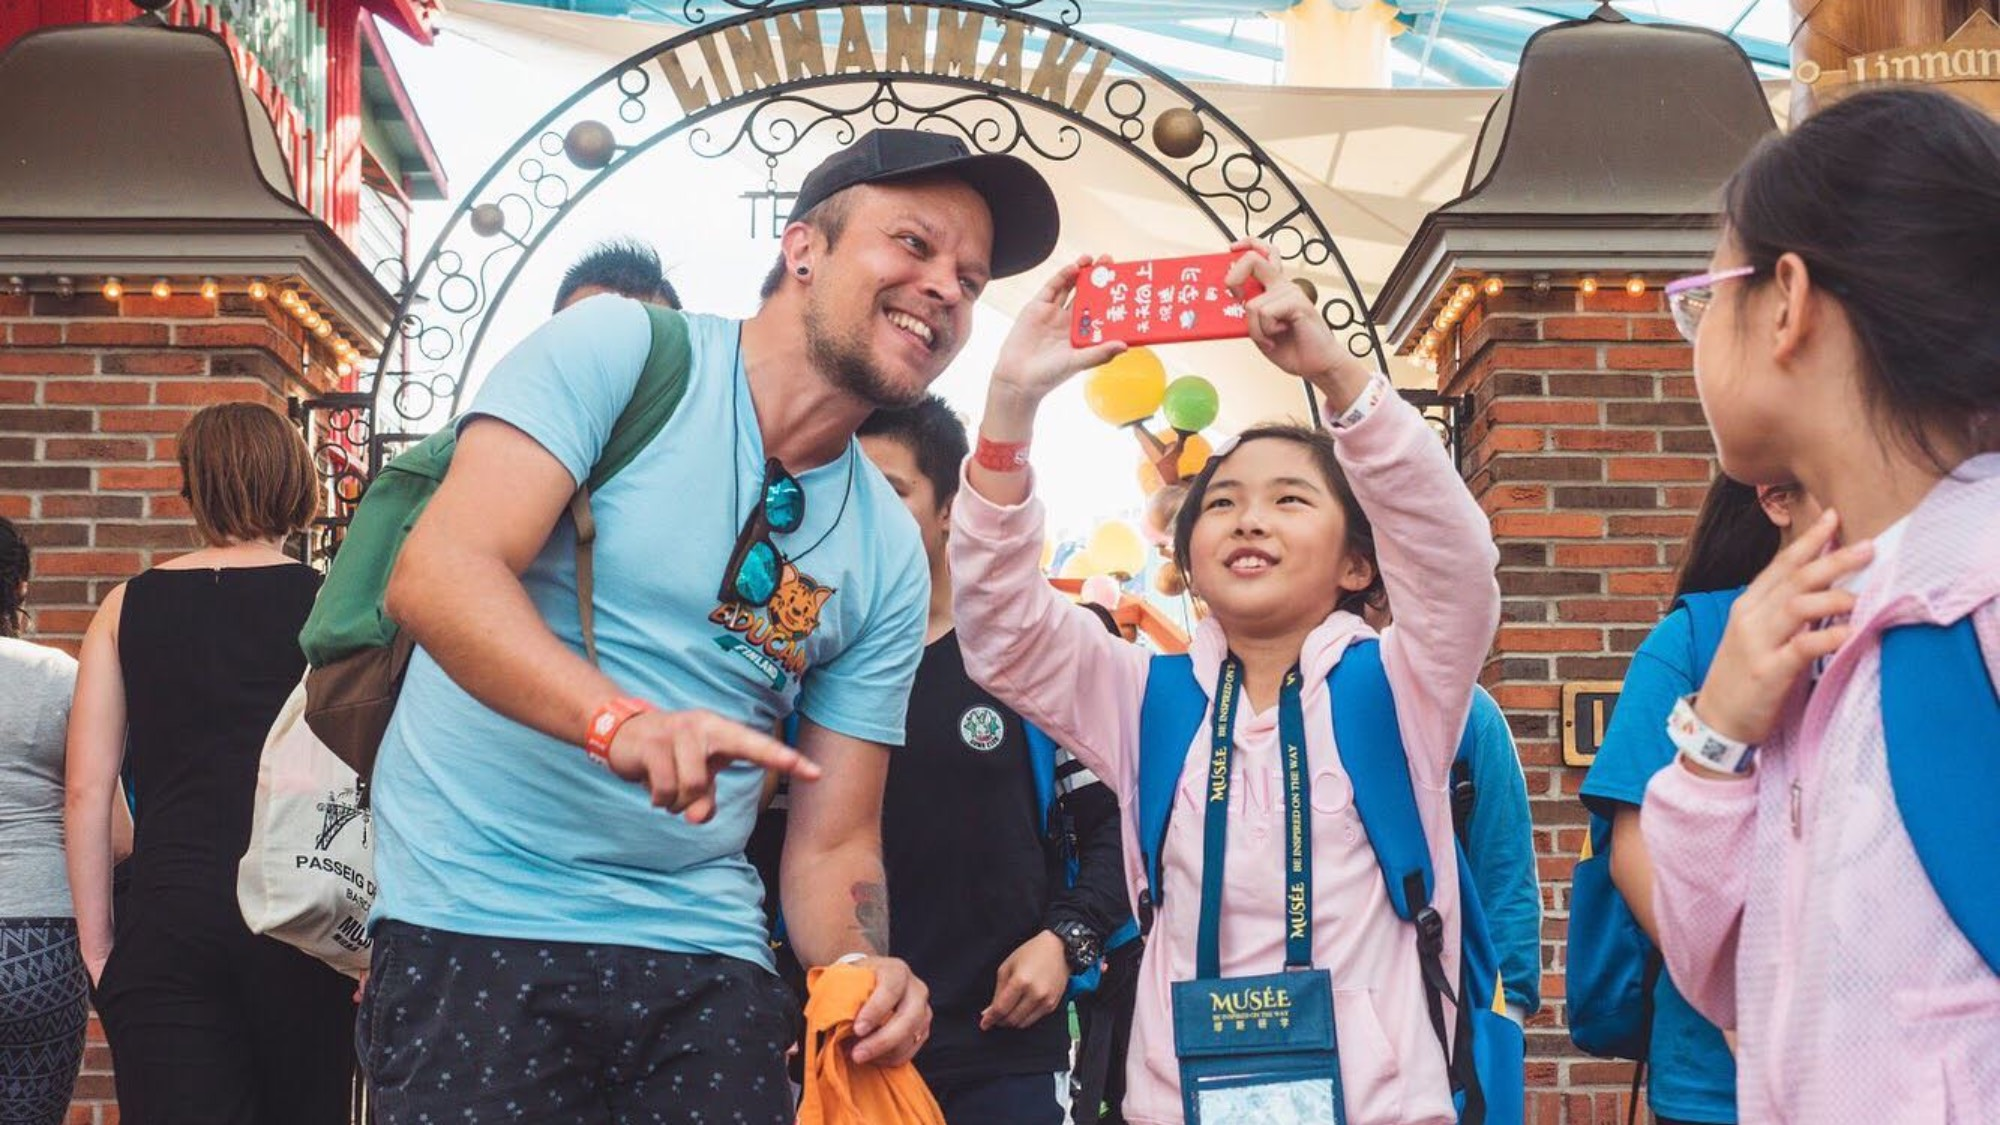 EduCamp Finland guide and Chinese girl taking a selfie outside Linnanmäki